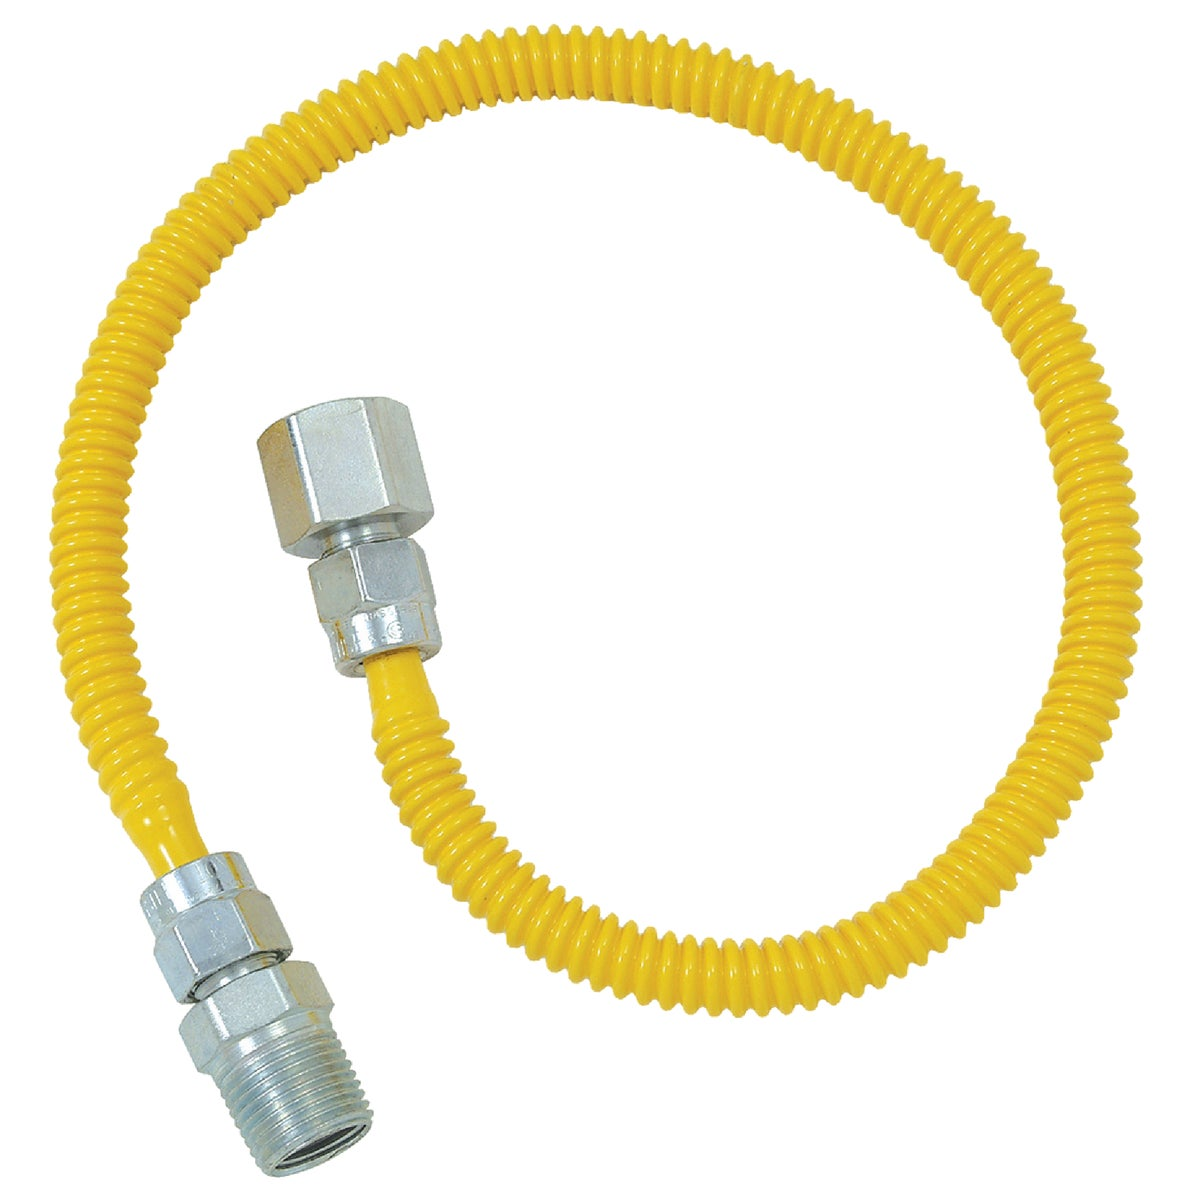 3/8X24 GAS CONNECTOR - CSSL54-24P by Brass Craft